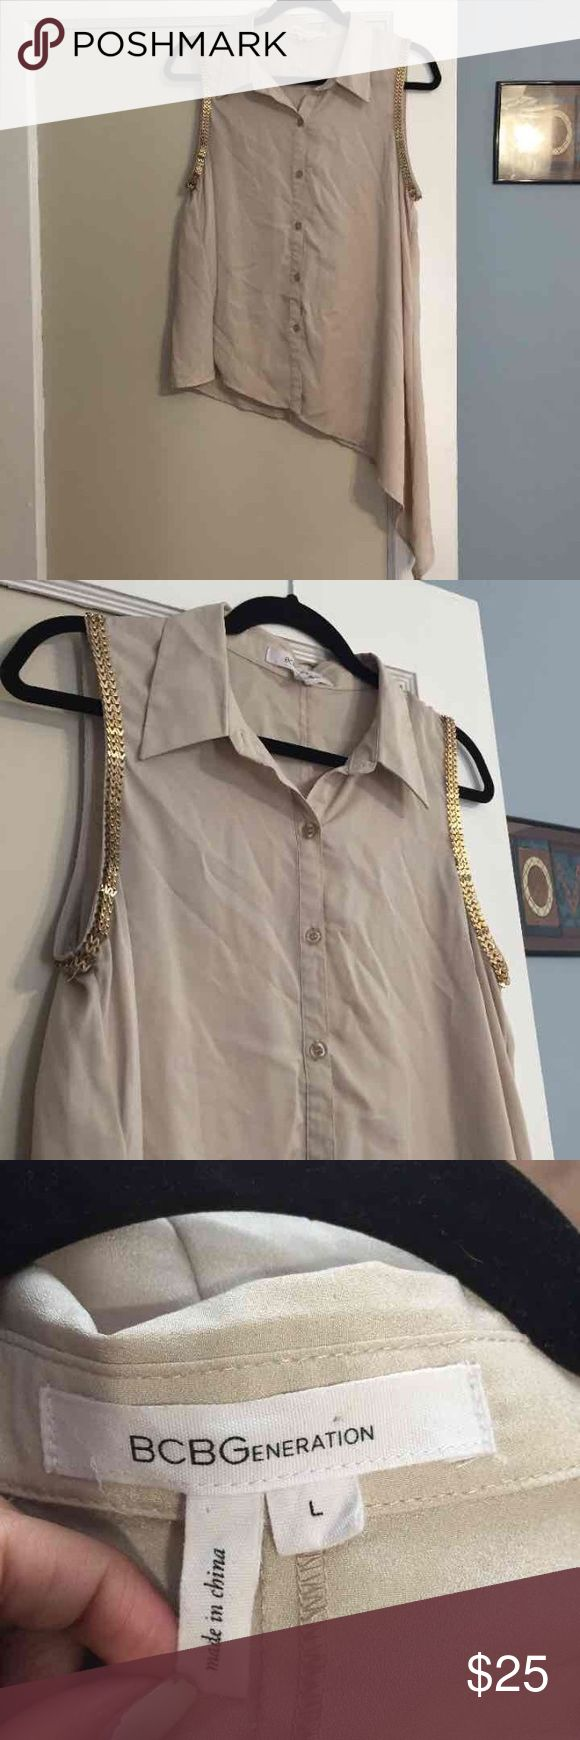 ⭐️BCBGeneration Top⭐️ Nude button up collared top. High-lo on one side. Has gold hardware detailing on the sleeves to make it pop😍in good condition! BCBGeneration Tops Button Down Shirts